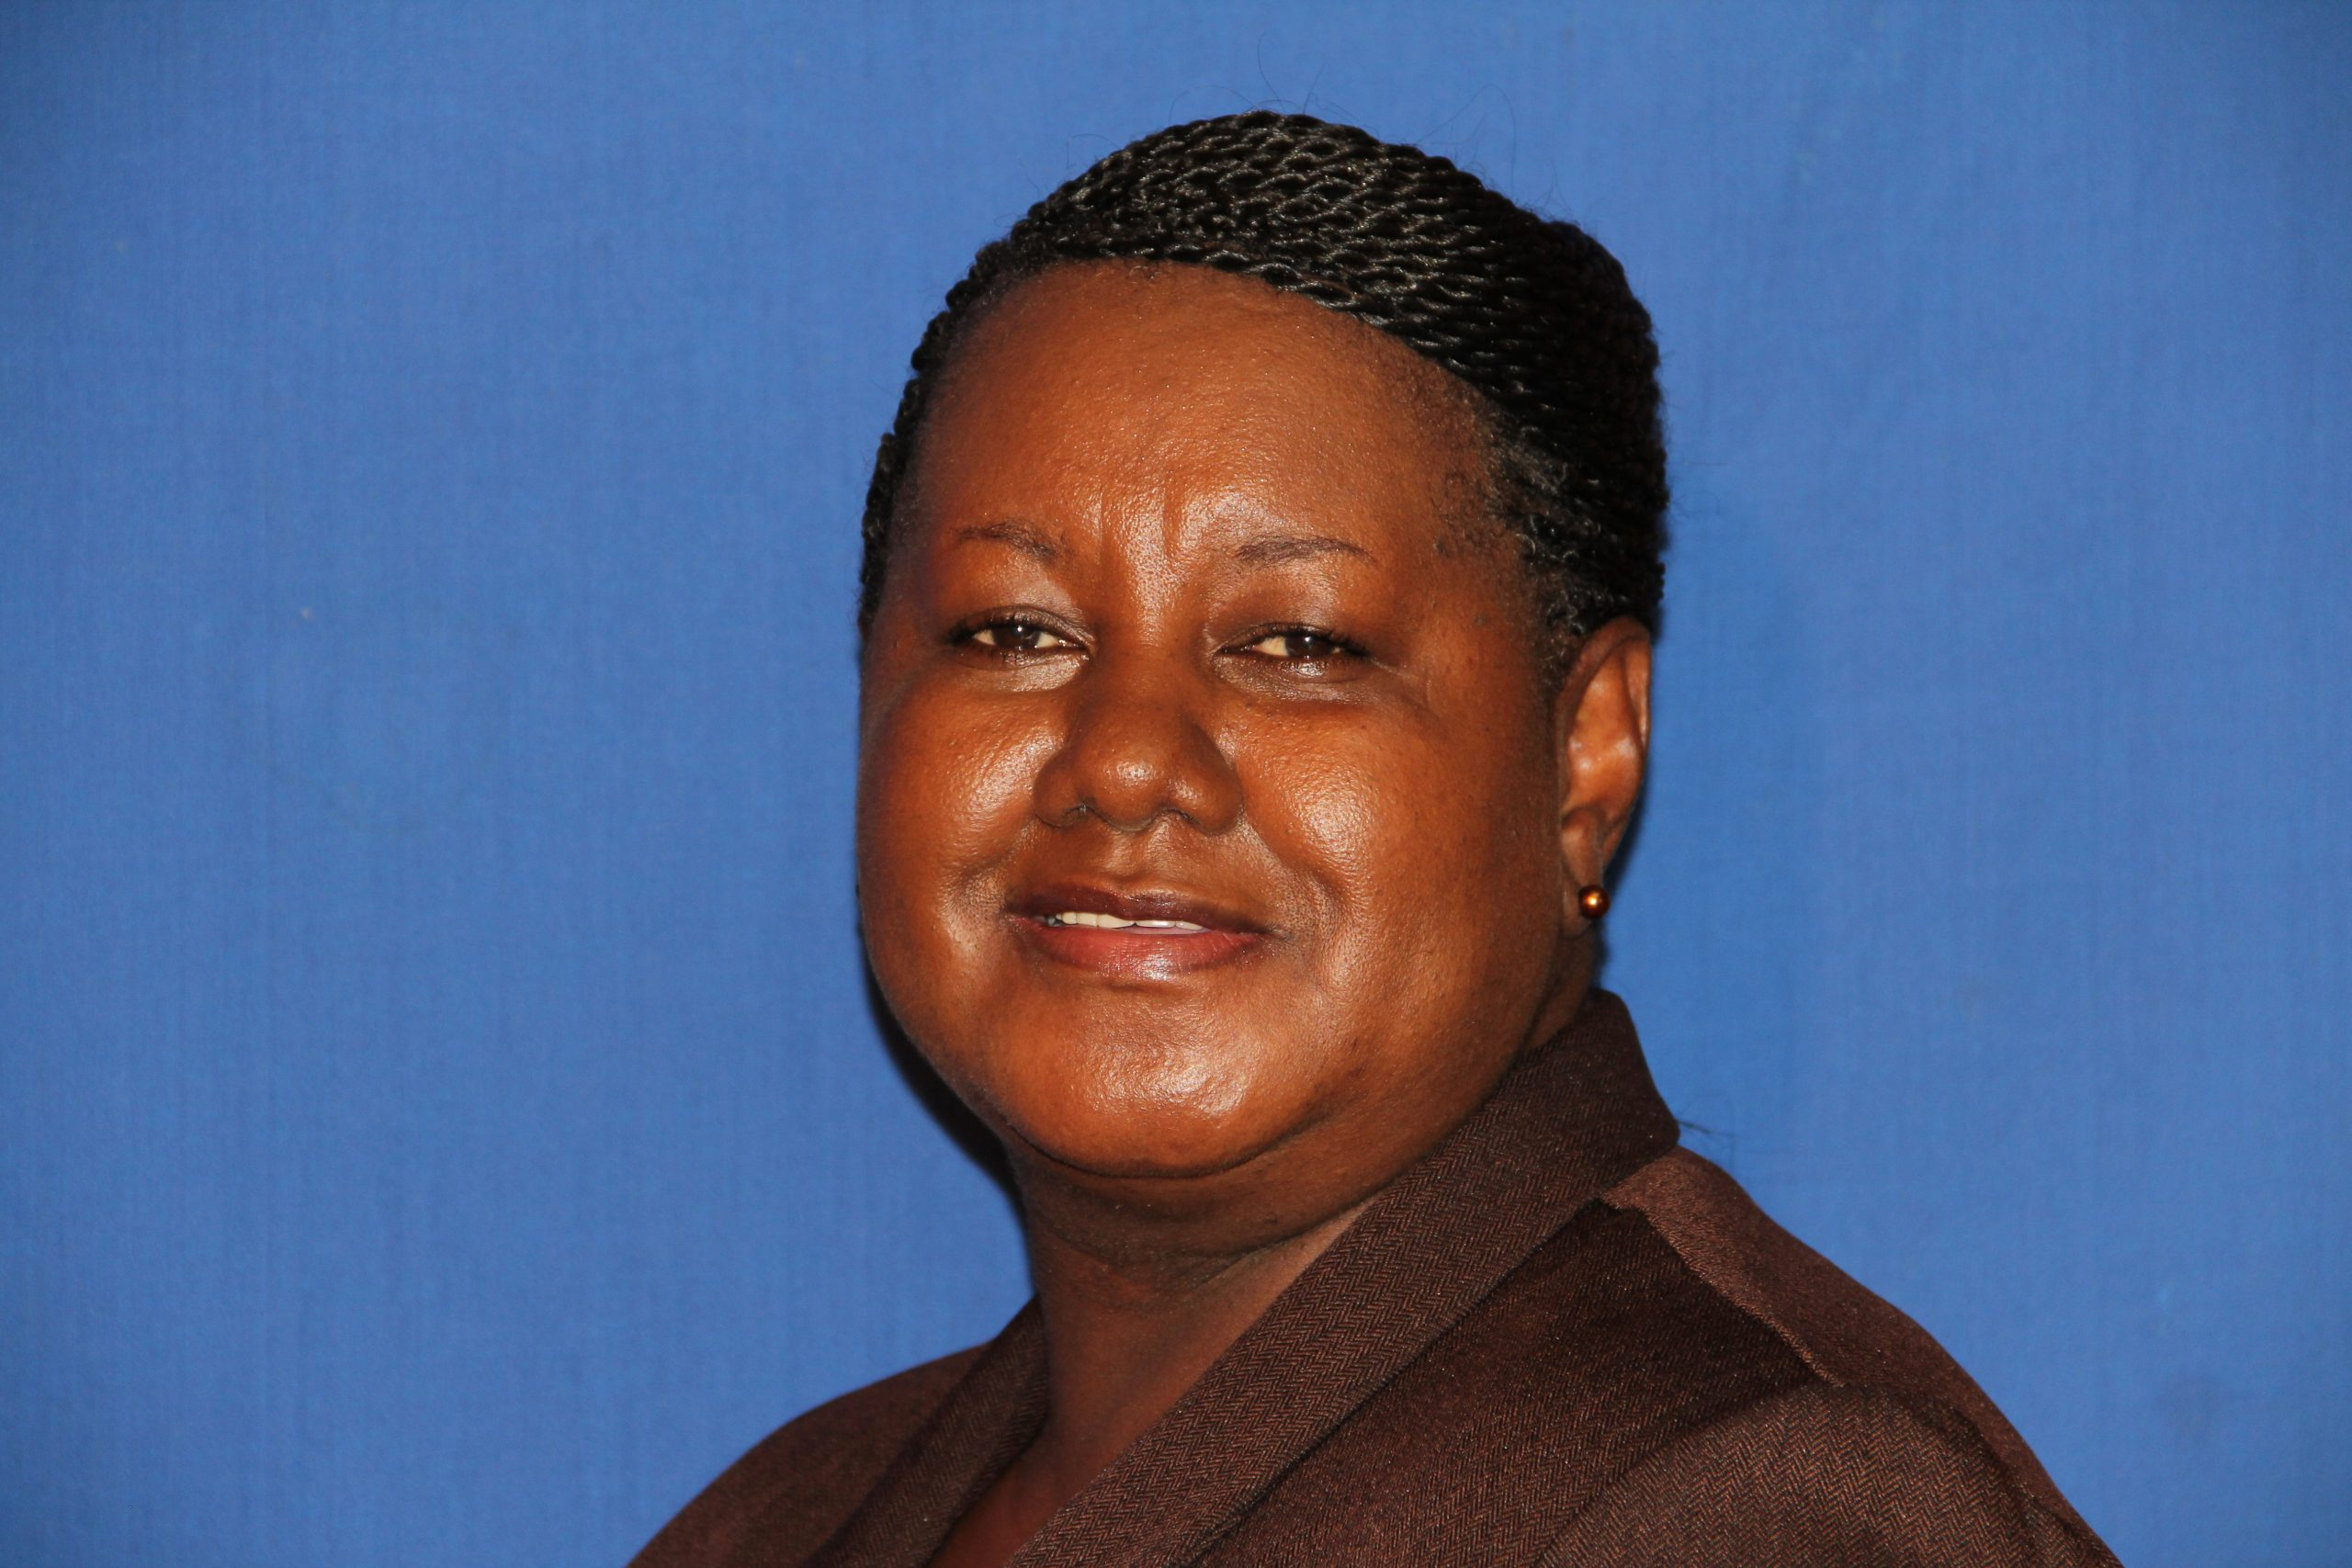 Mrs. Sandra Maynard-Morton, Director of the Department of Social Services at the Ministry of Social Development on Nevis